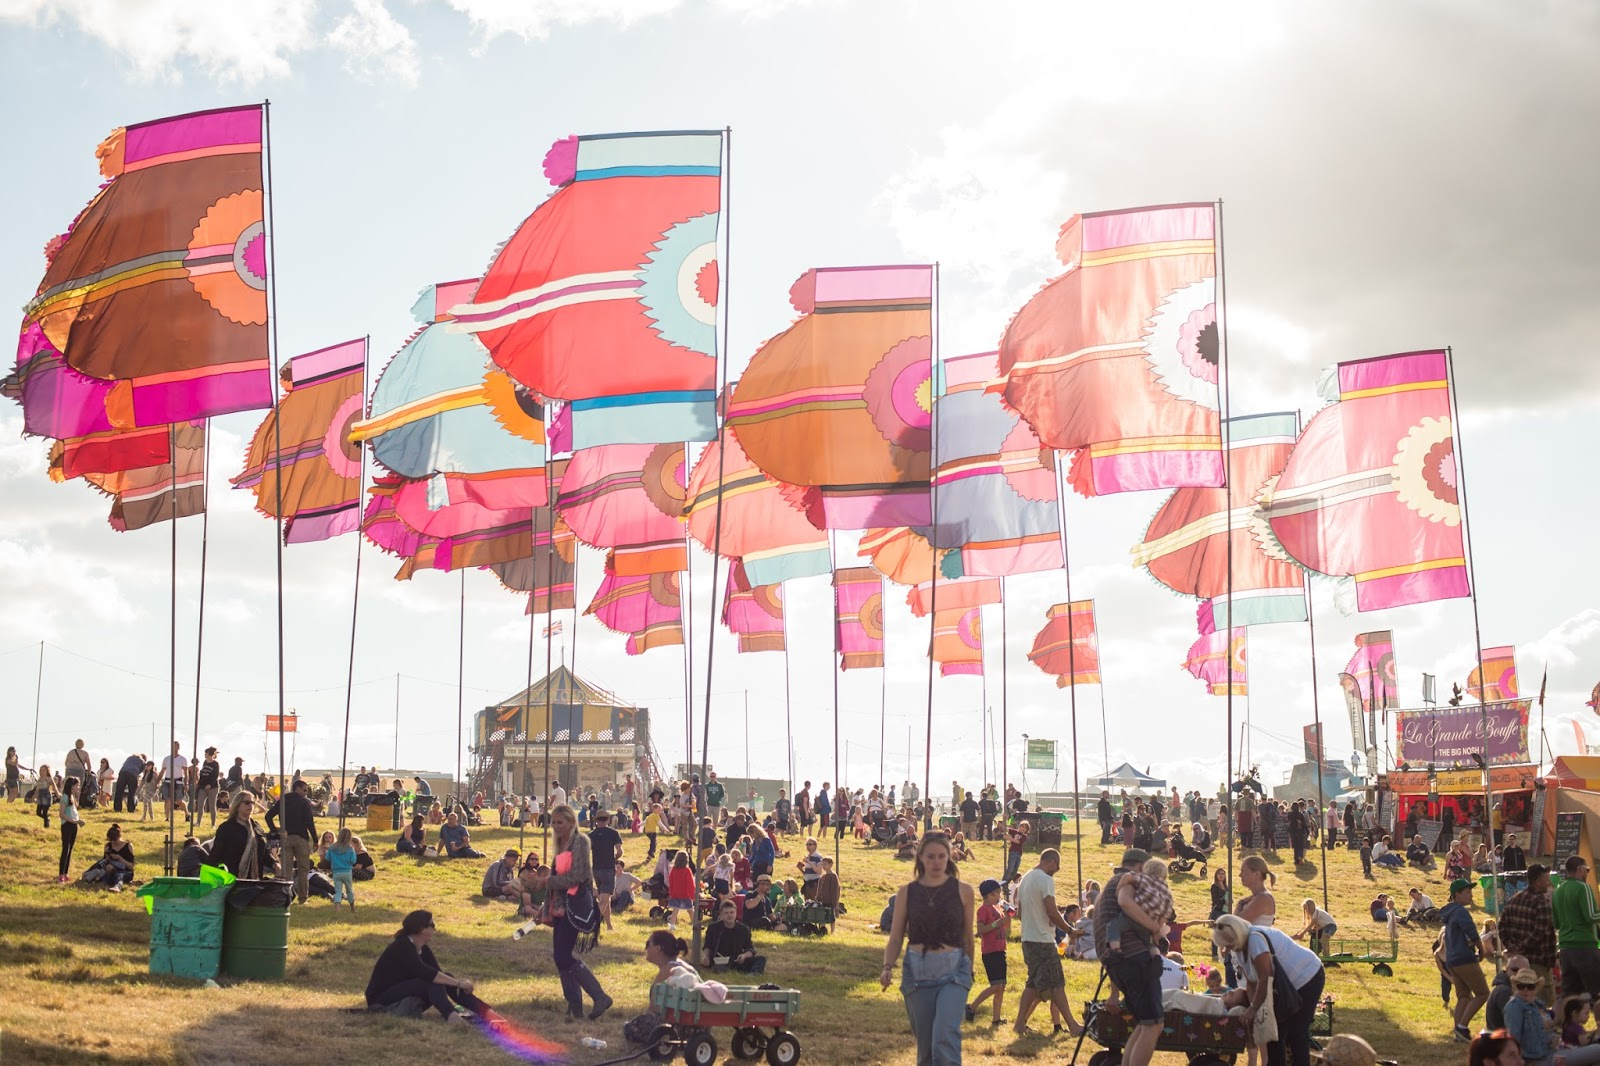 mamasVIB | V. I. BASH: An A-Z of our first Camp Bestival - Part One | camp bestival 2015 | camp bestival review | weekend at camp bestival | festival | family festival | lulworth castle | festival weekend | devon | festival | tangerine fields | cocktails | instgram | a-z | a-z of festivals | festival style | mamasVIB | bonita turner| stylist | packing for a festival | first time at a festival | festival essentials | guide to camp bestival 2015 | camp bestival |